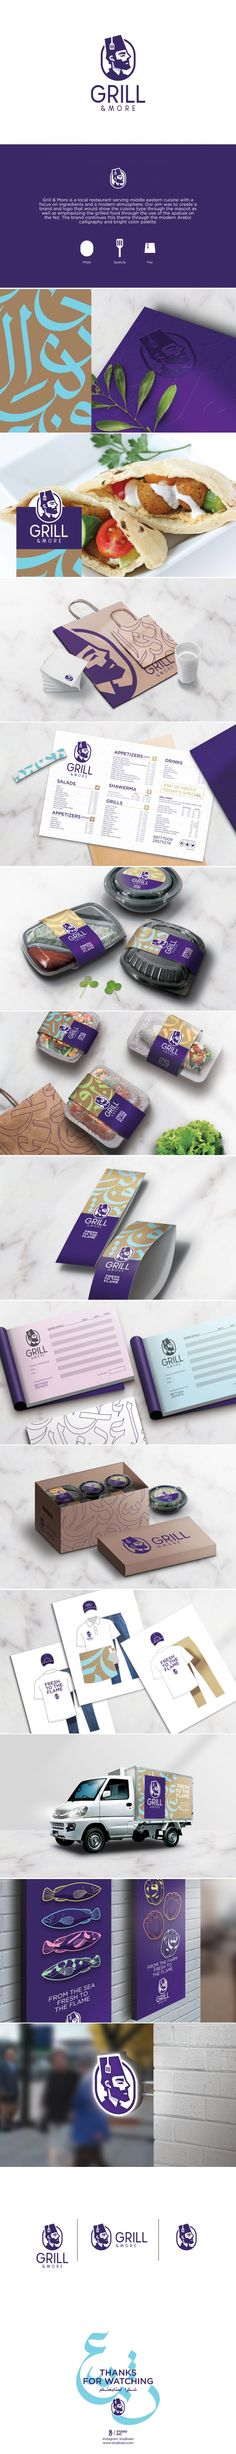 Grill & More by @studioaio  https://www.behance.net/gallery/37354689/Grill-More